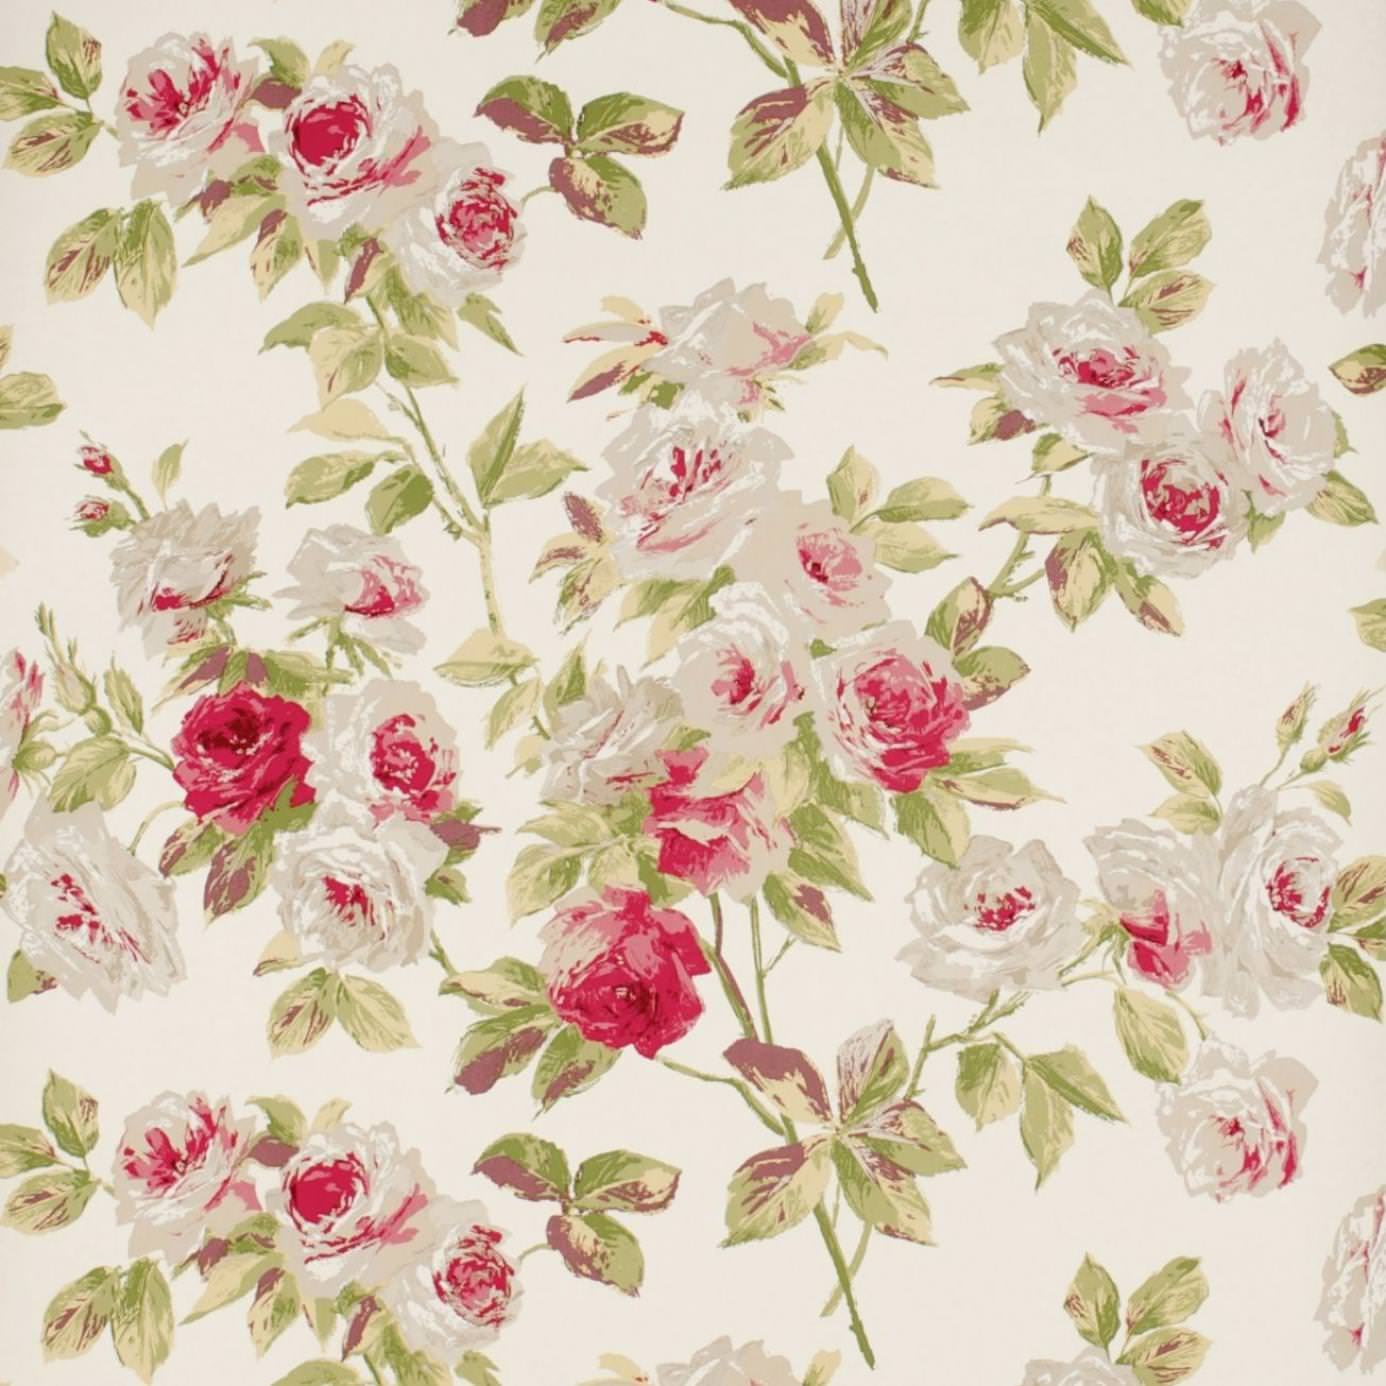 Download 15 free floral vintage wallpapers for Retro images